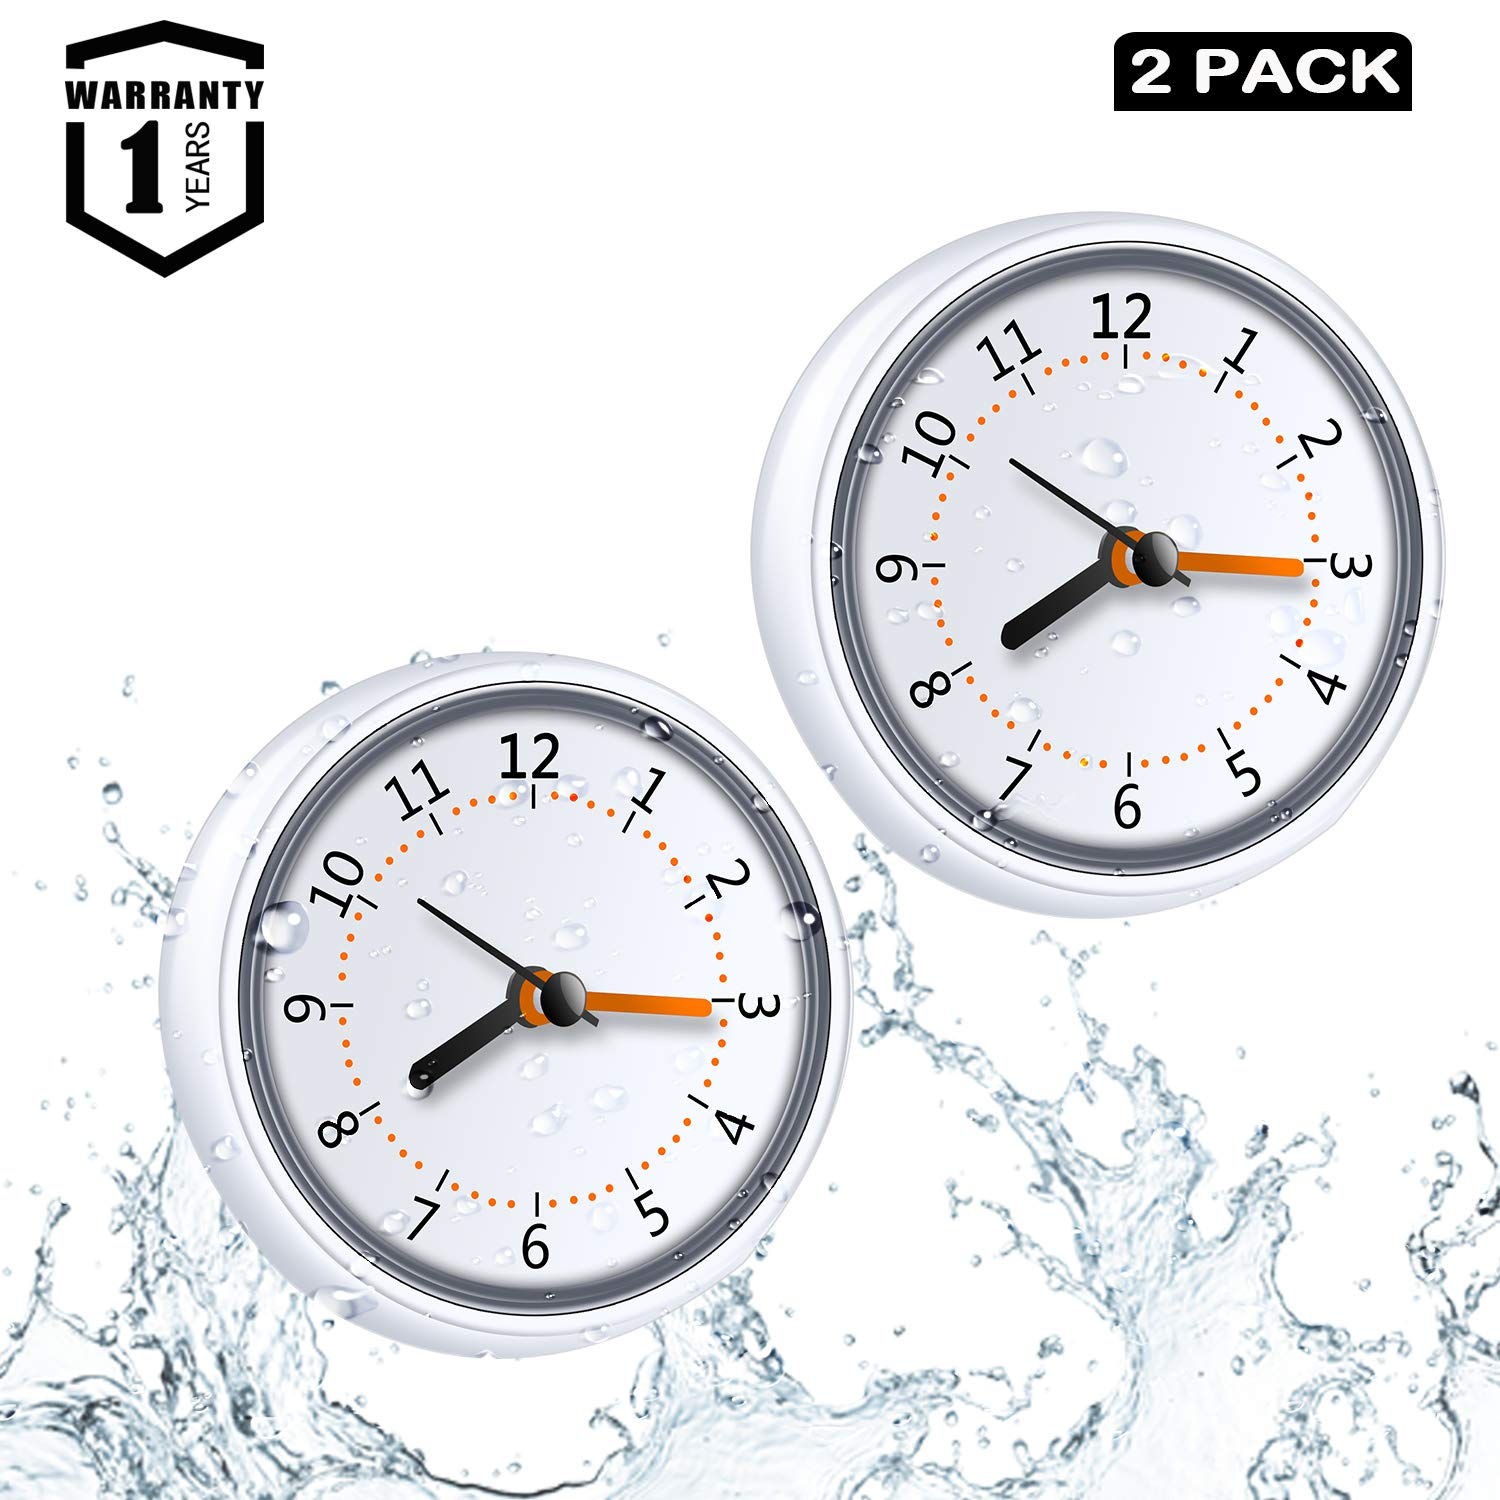 LXSZRPH Mini Shower Clock Waterproof IP24 Wall Clock Suction Cup Bathroom Clock Acrylic Face Suction Clock for Shower Washroom Kitchen (2pack) by LXSZRPH